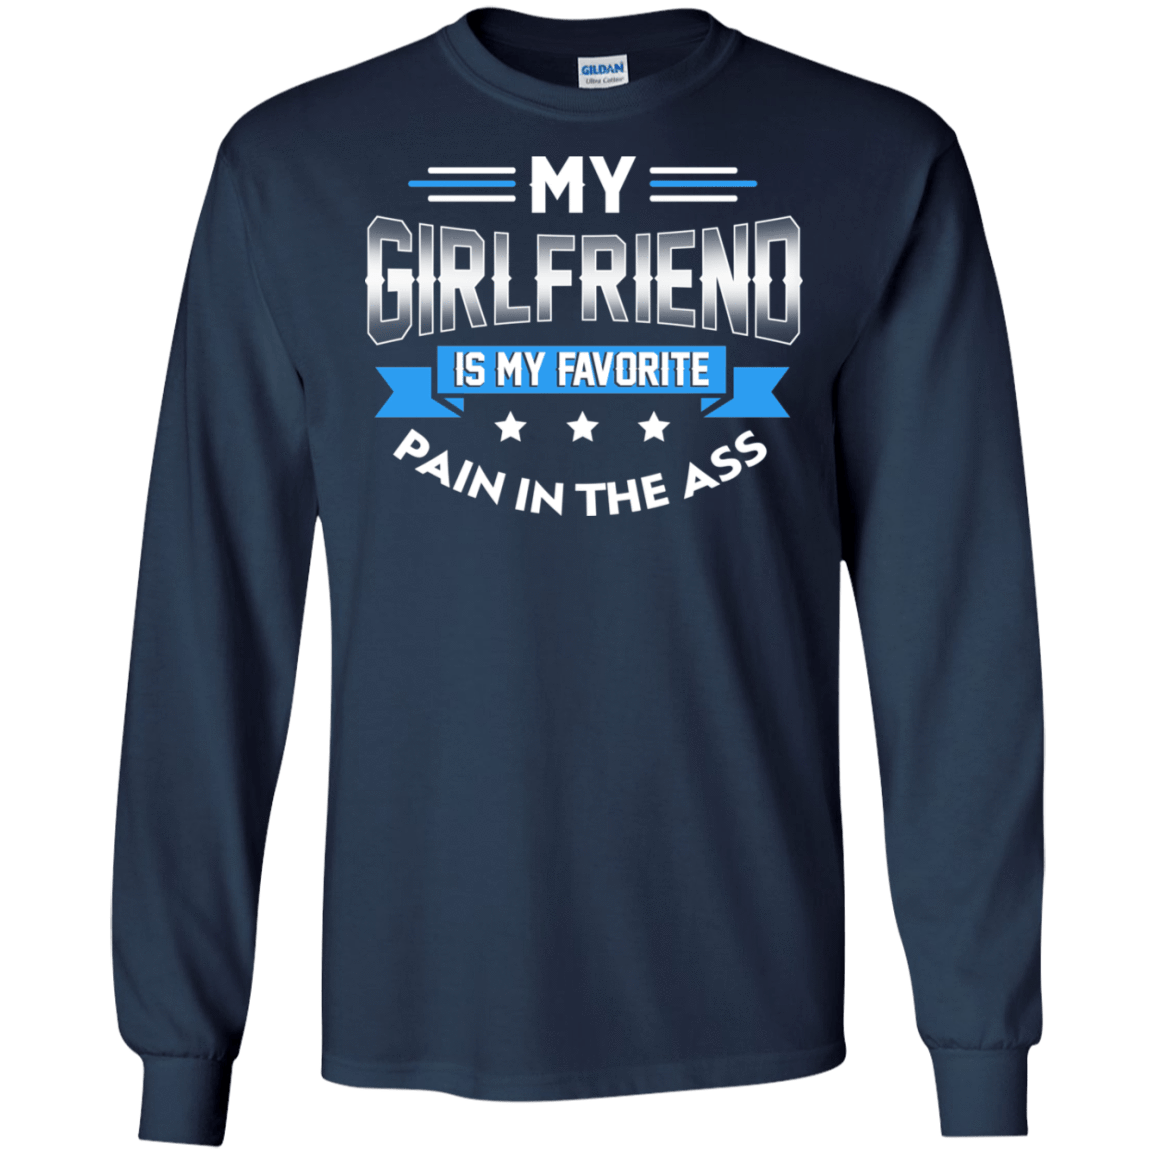 My Girlfriend Is My Favorite Pain In The Ass 30-184-73428844-331 - Tee Ript